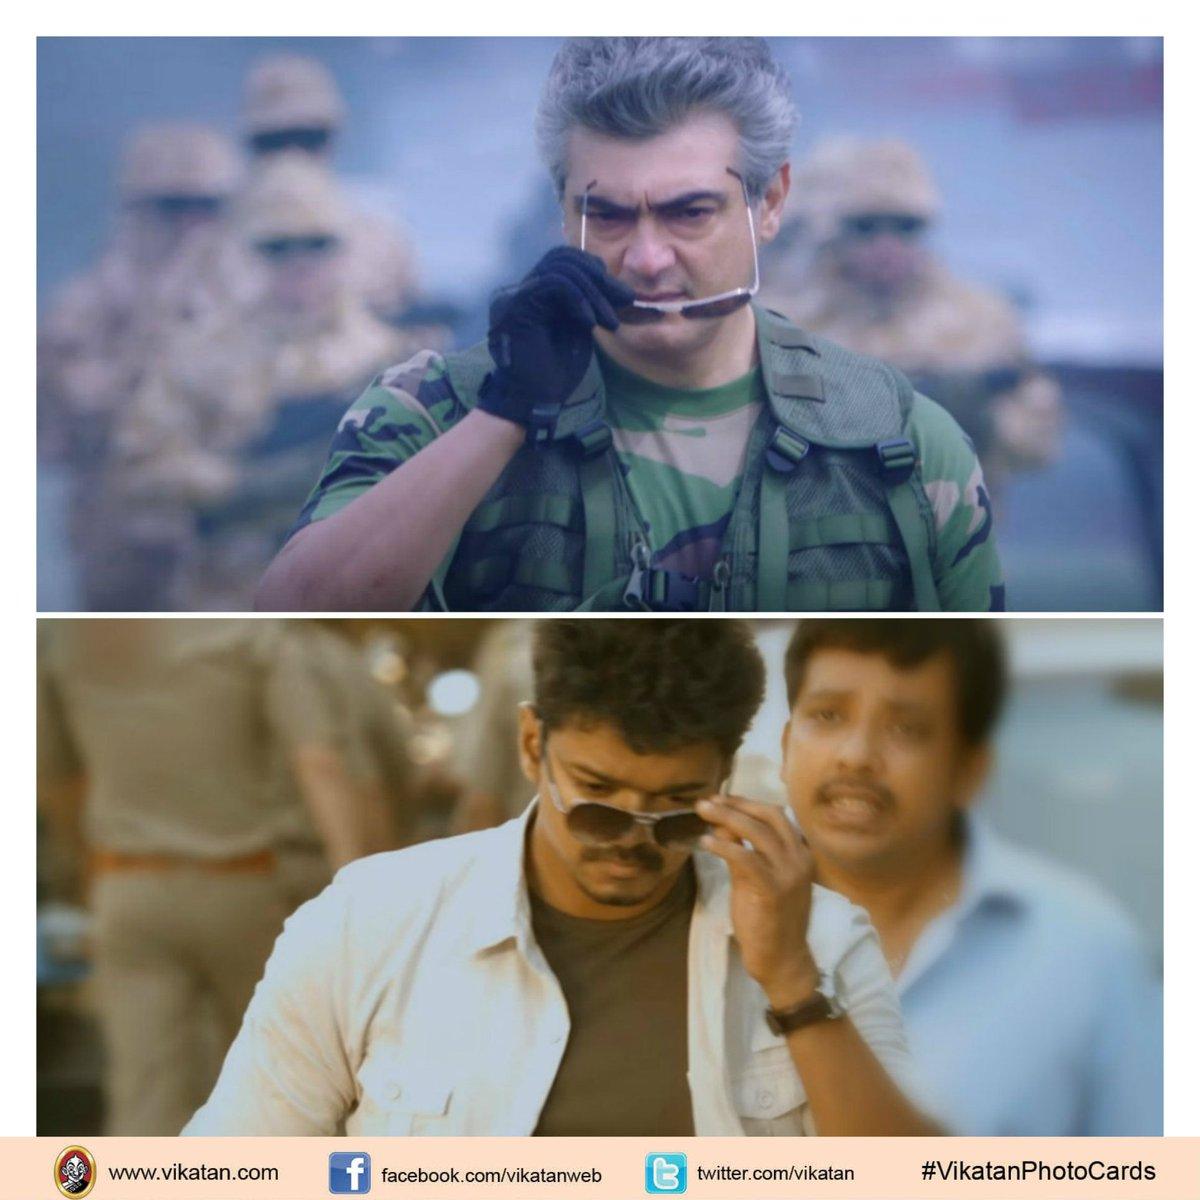 அட... விவேகம் முழுக்க விஜய் டச்! #VikatanPhotoCards #Vivegam #Ajith #Vijay https://t.co/15LNBhZyiR https://t.co/MqzdPeo9Dz